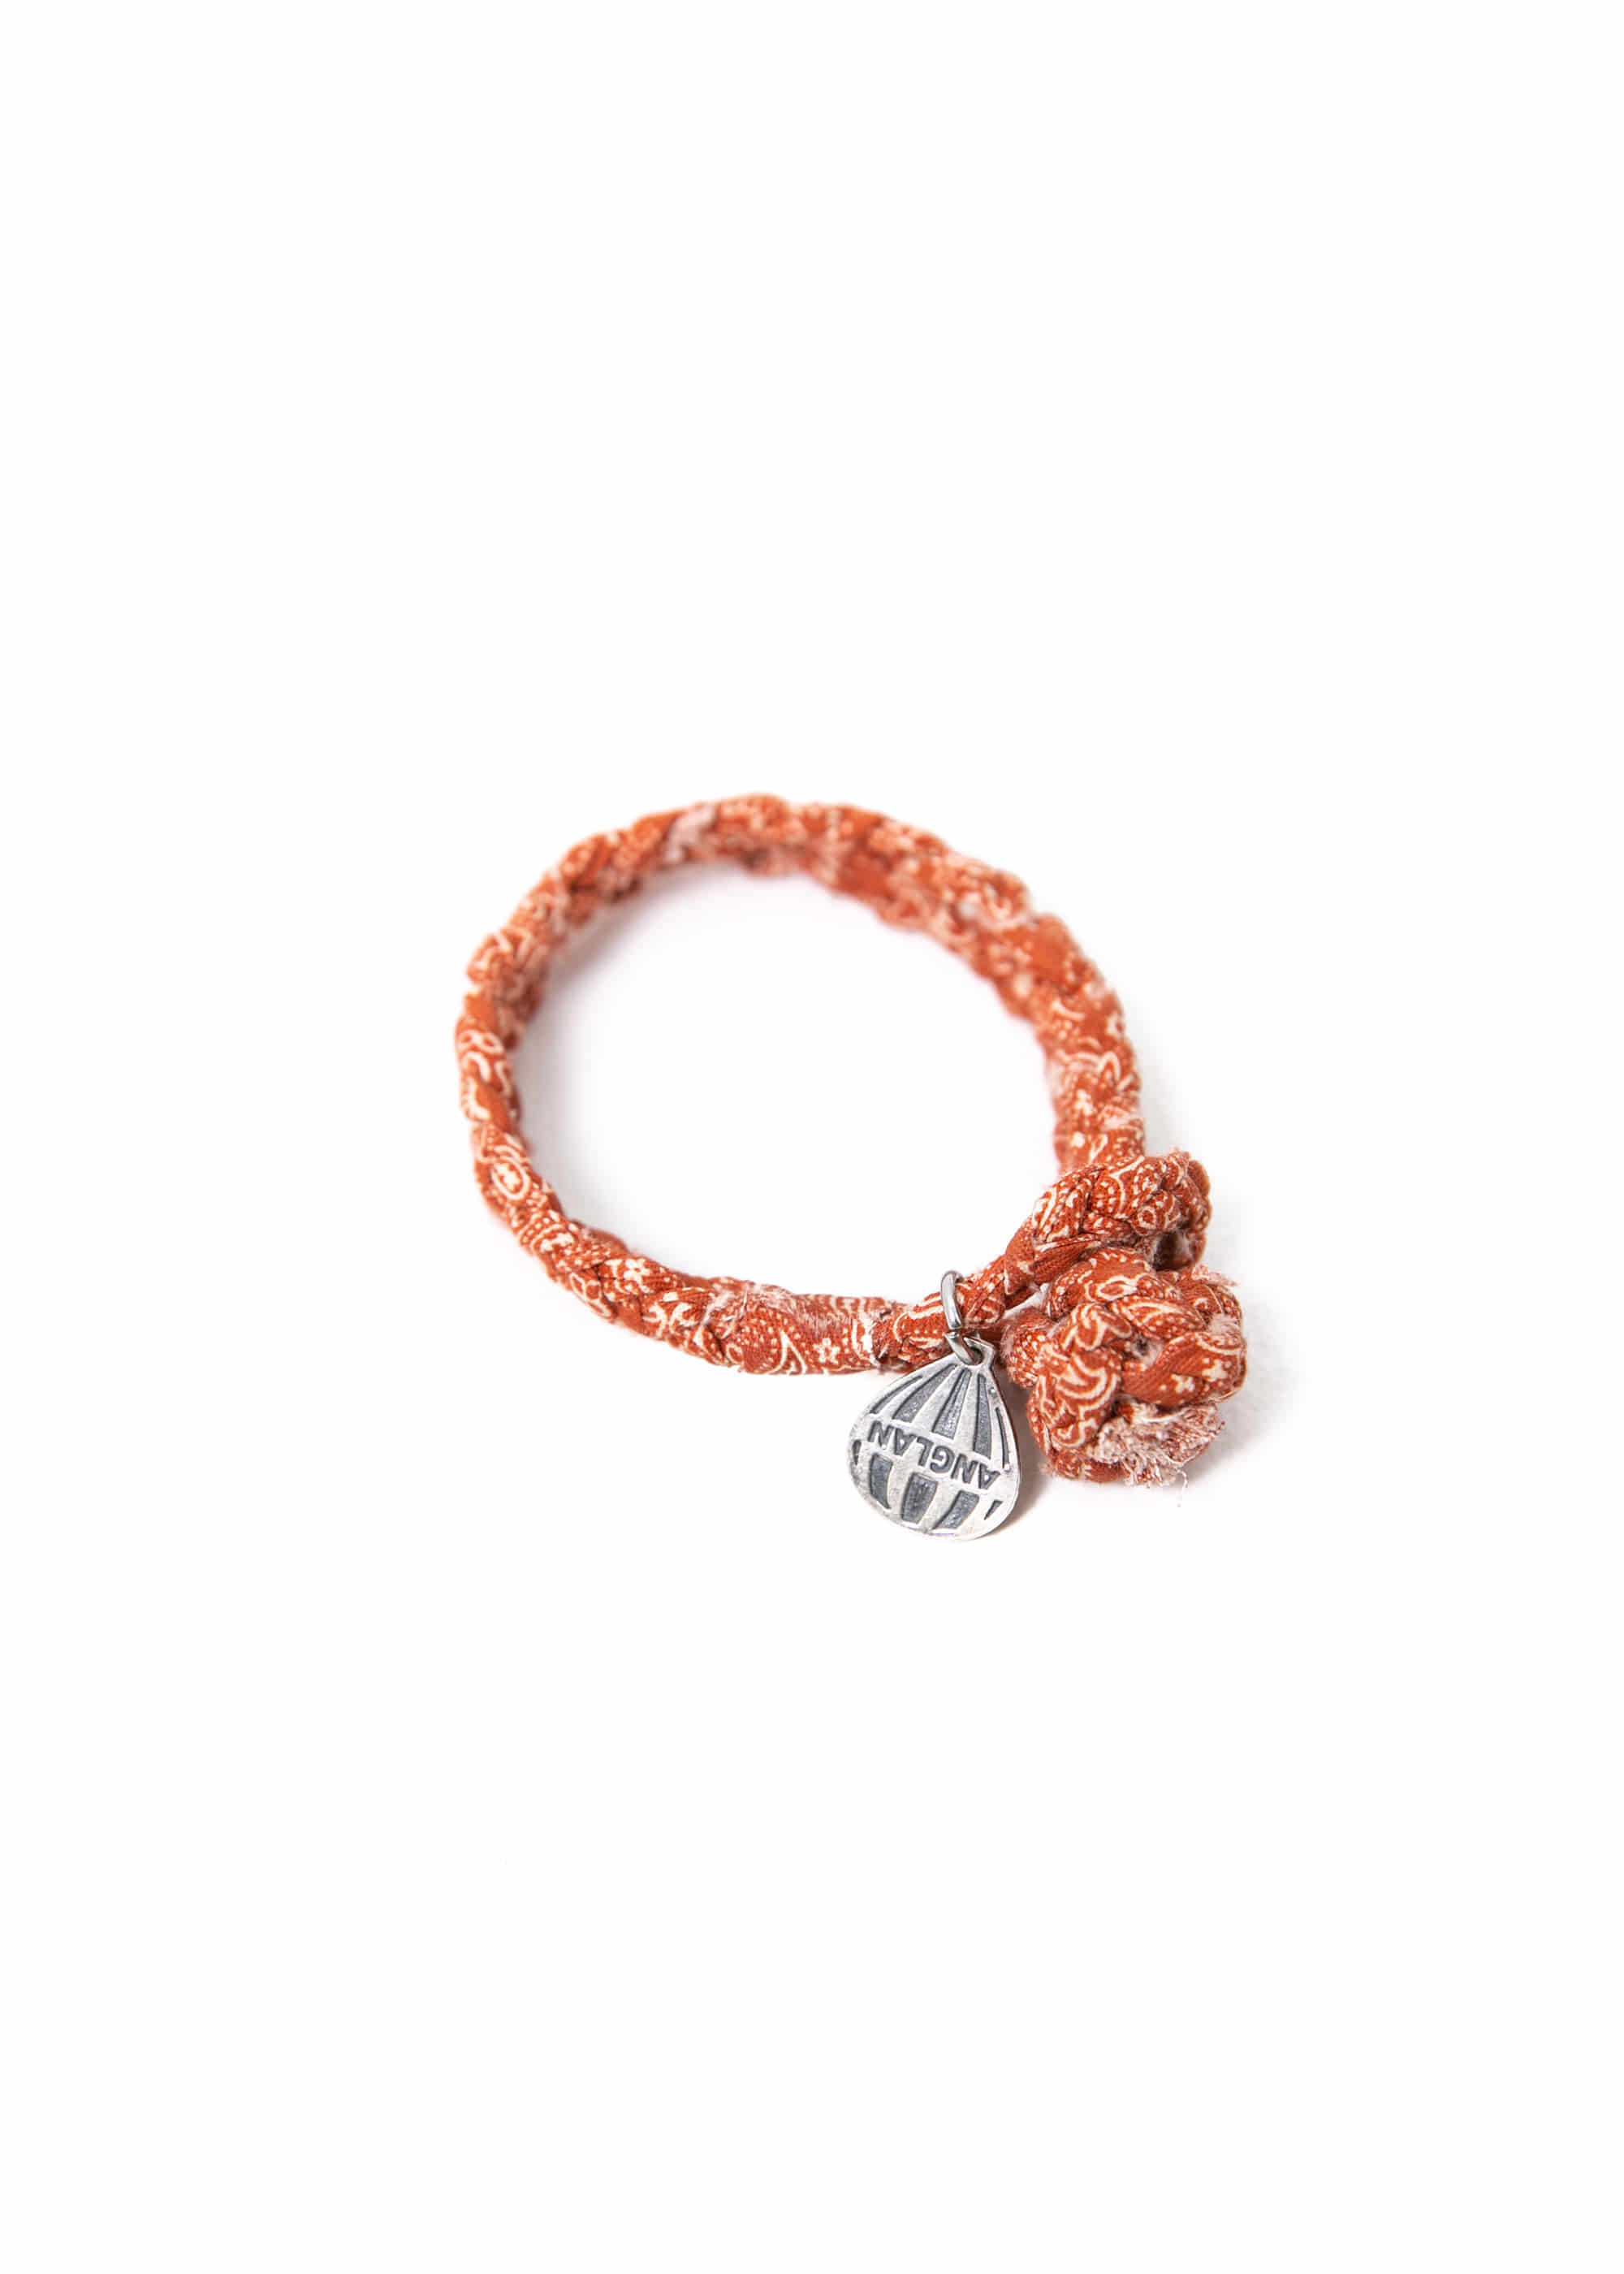 [AG] Paisley Weaving Pendant Bracelet - Orange